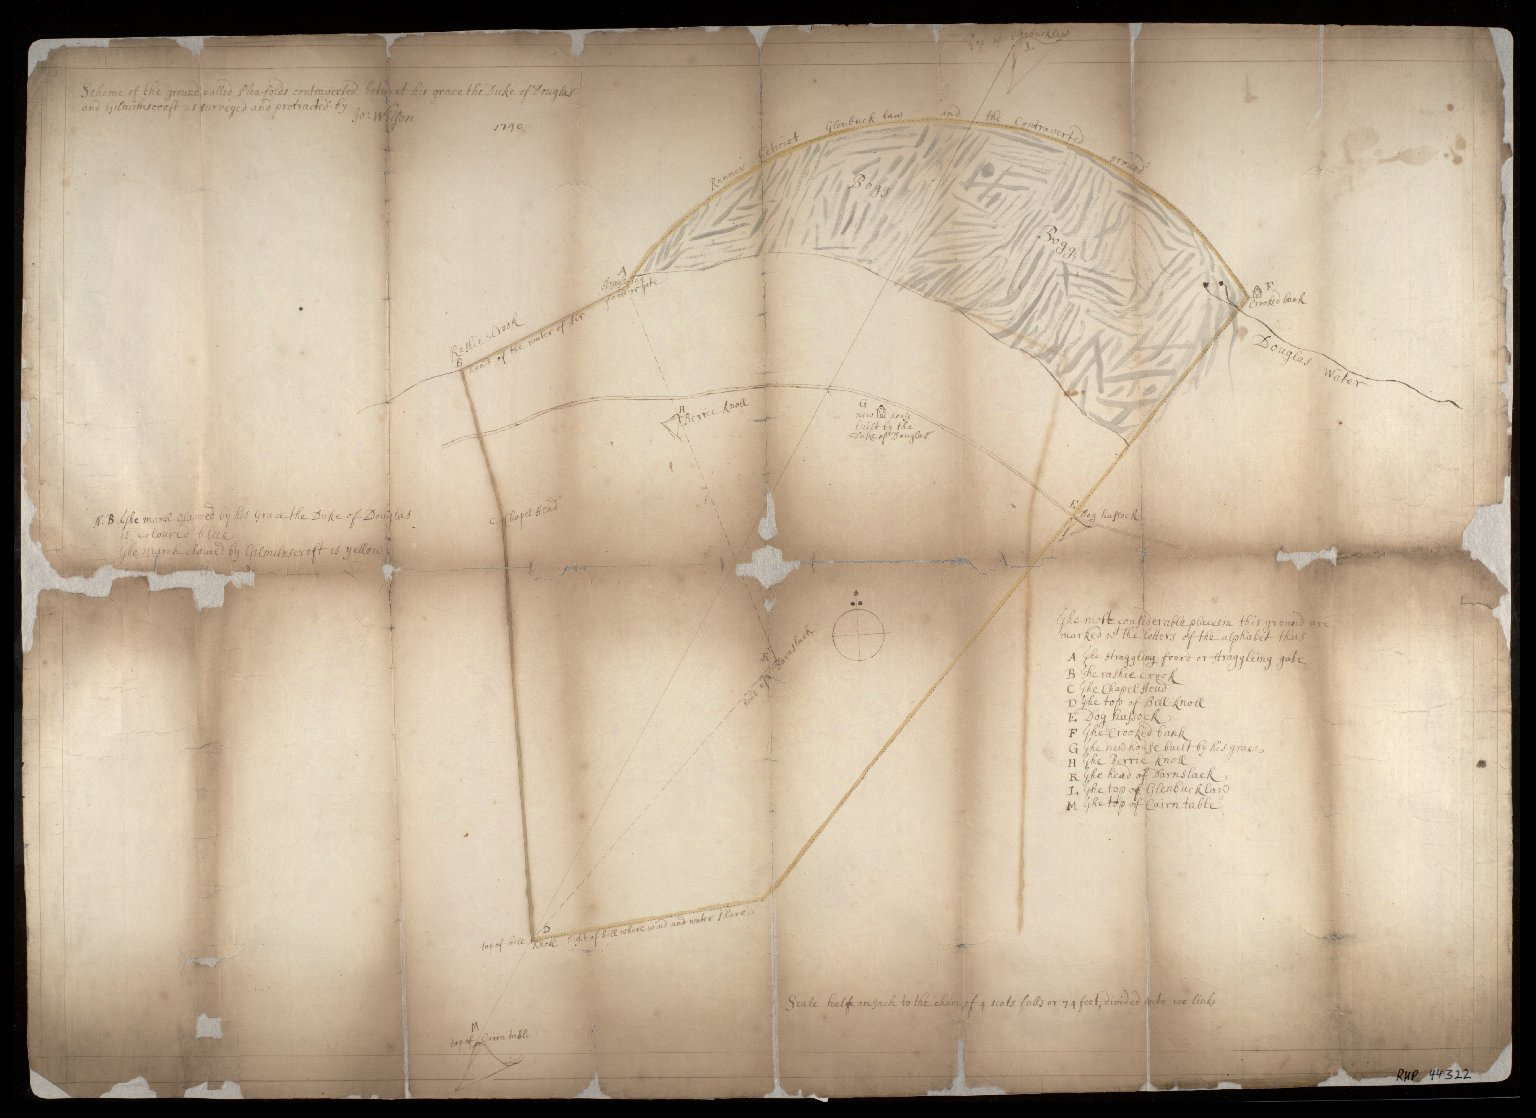 Scheme of the ground called Plea-folds contraverted betwixt his grace the Duke of Douglas and Gilmilnscroft as surveyed and protracted by Jo. Wilson. [1 of 1]